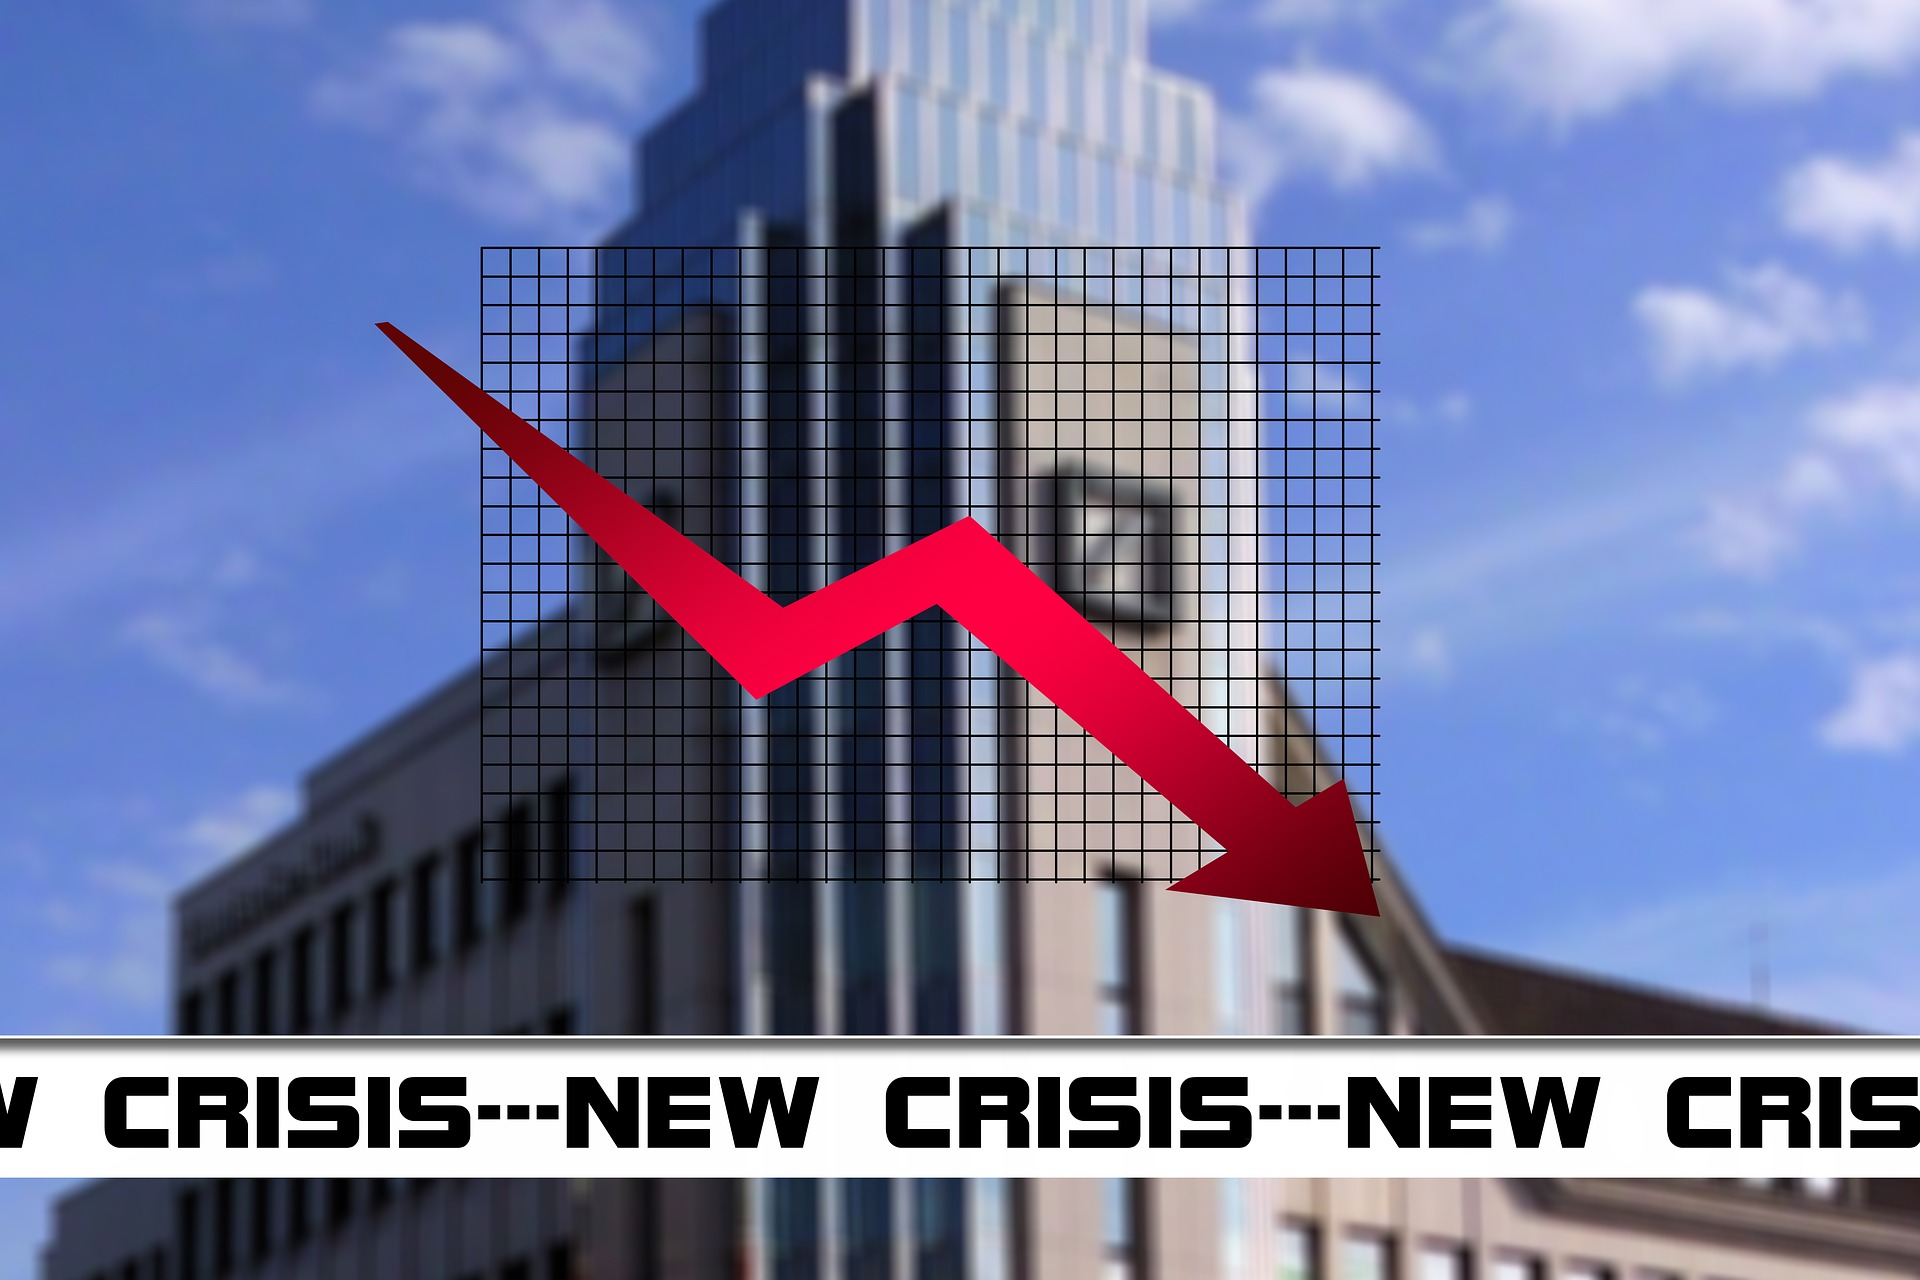 How to lead a company out of crisis 27